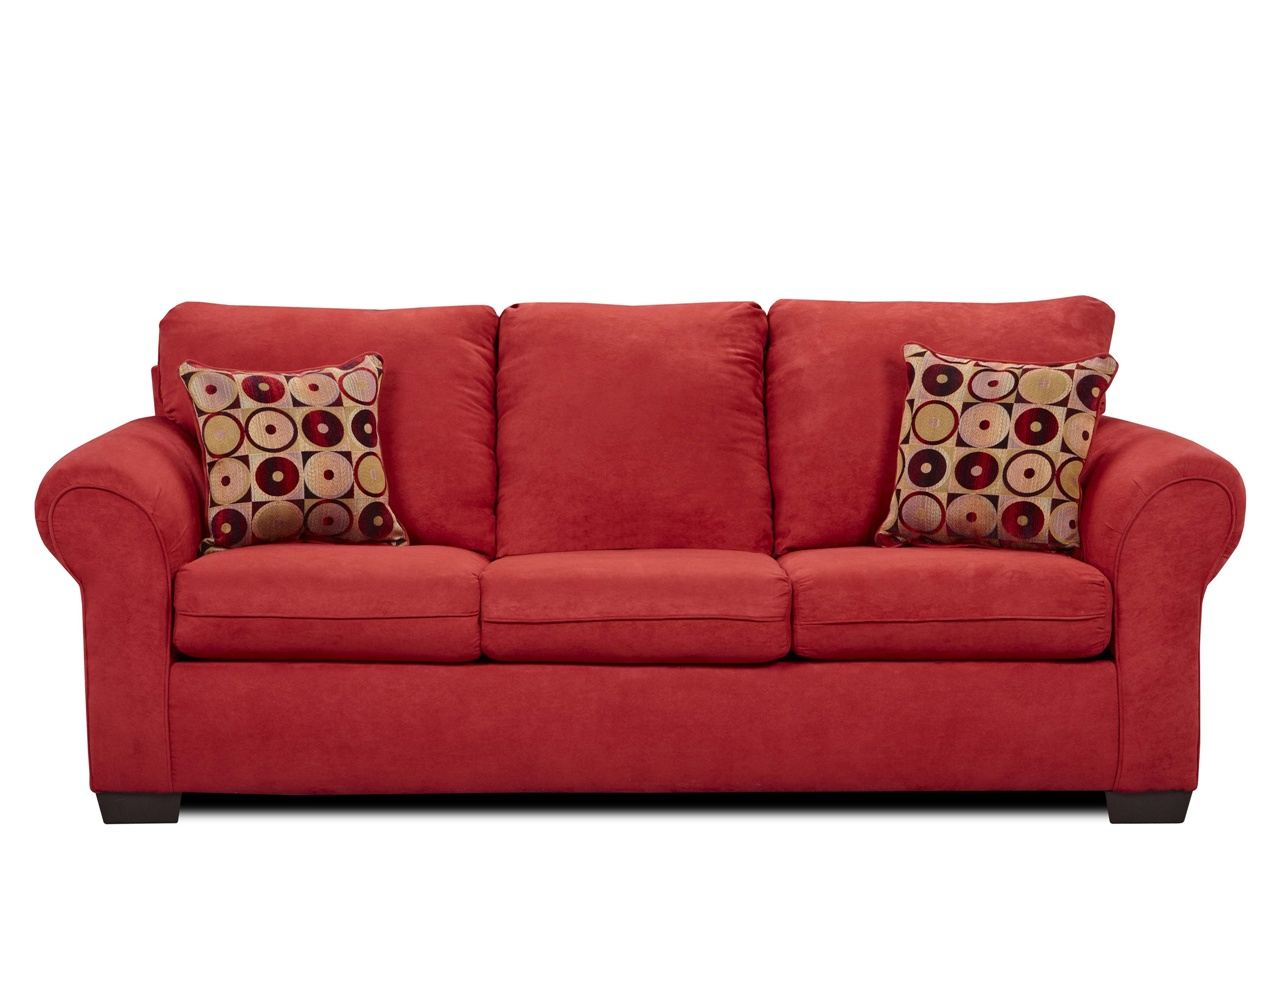 Cute cheapest couches available online couch sofa for Cheap designer couches